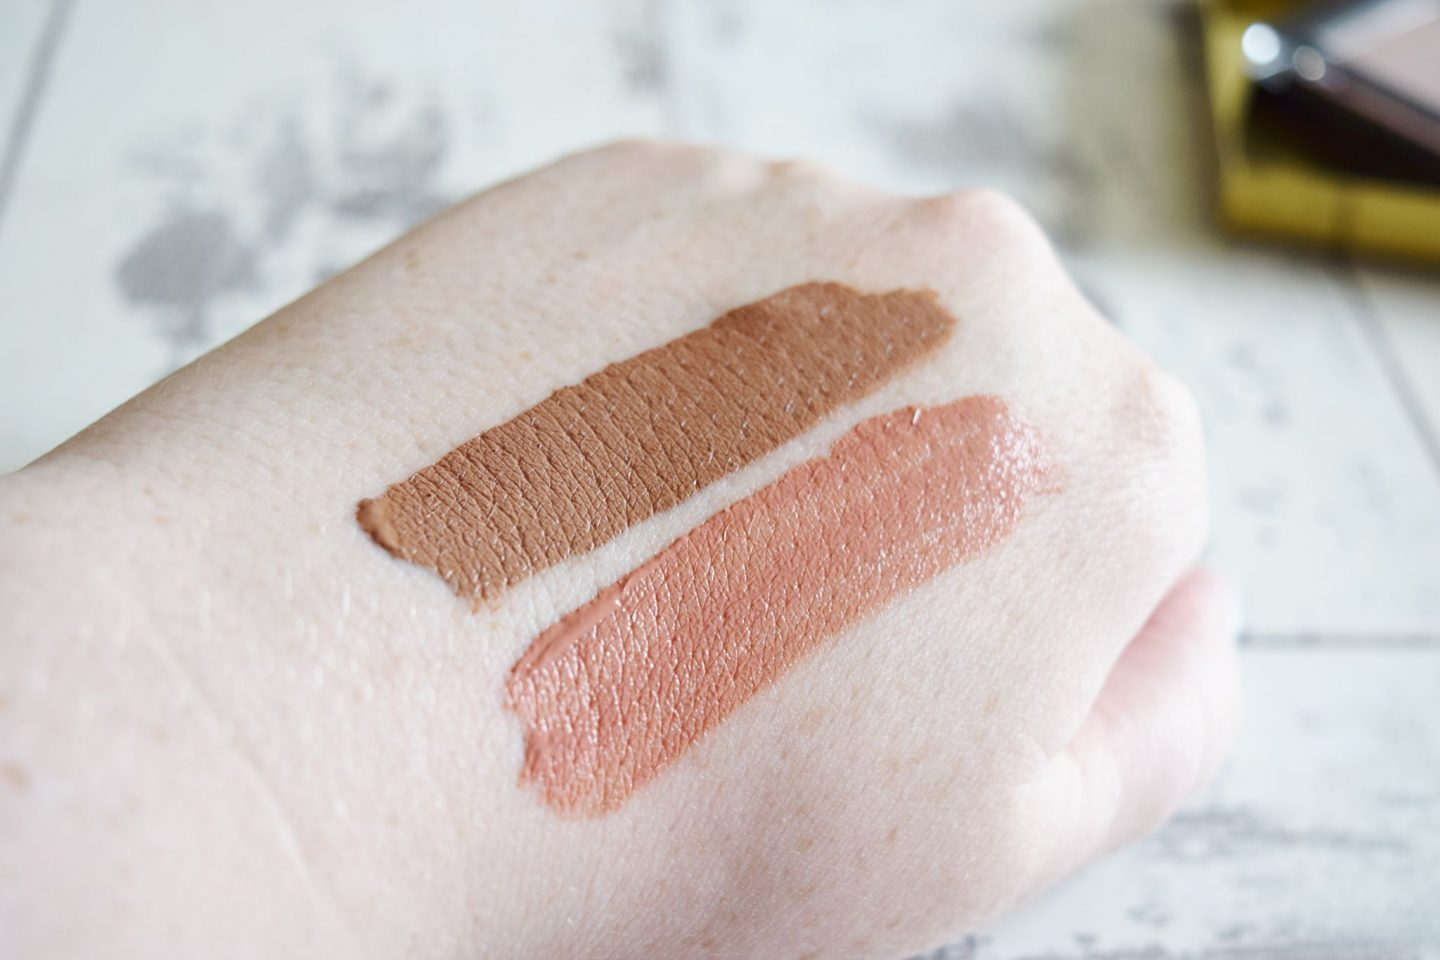 B. Cassie Lomas Matte Liquid Lipstick in All About Me hand swatch